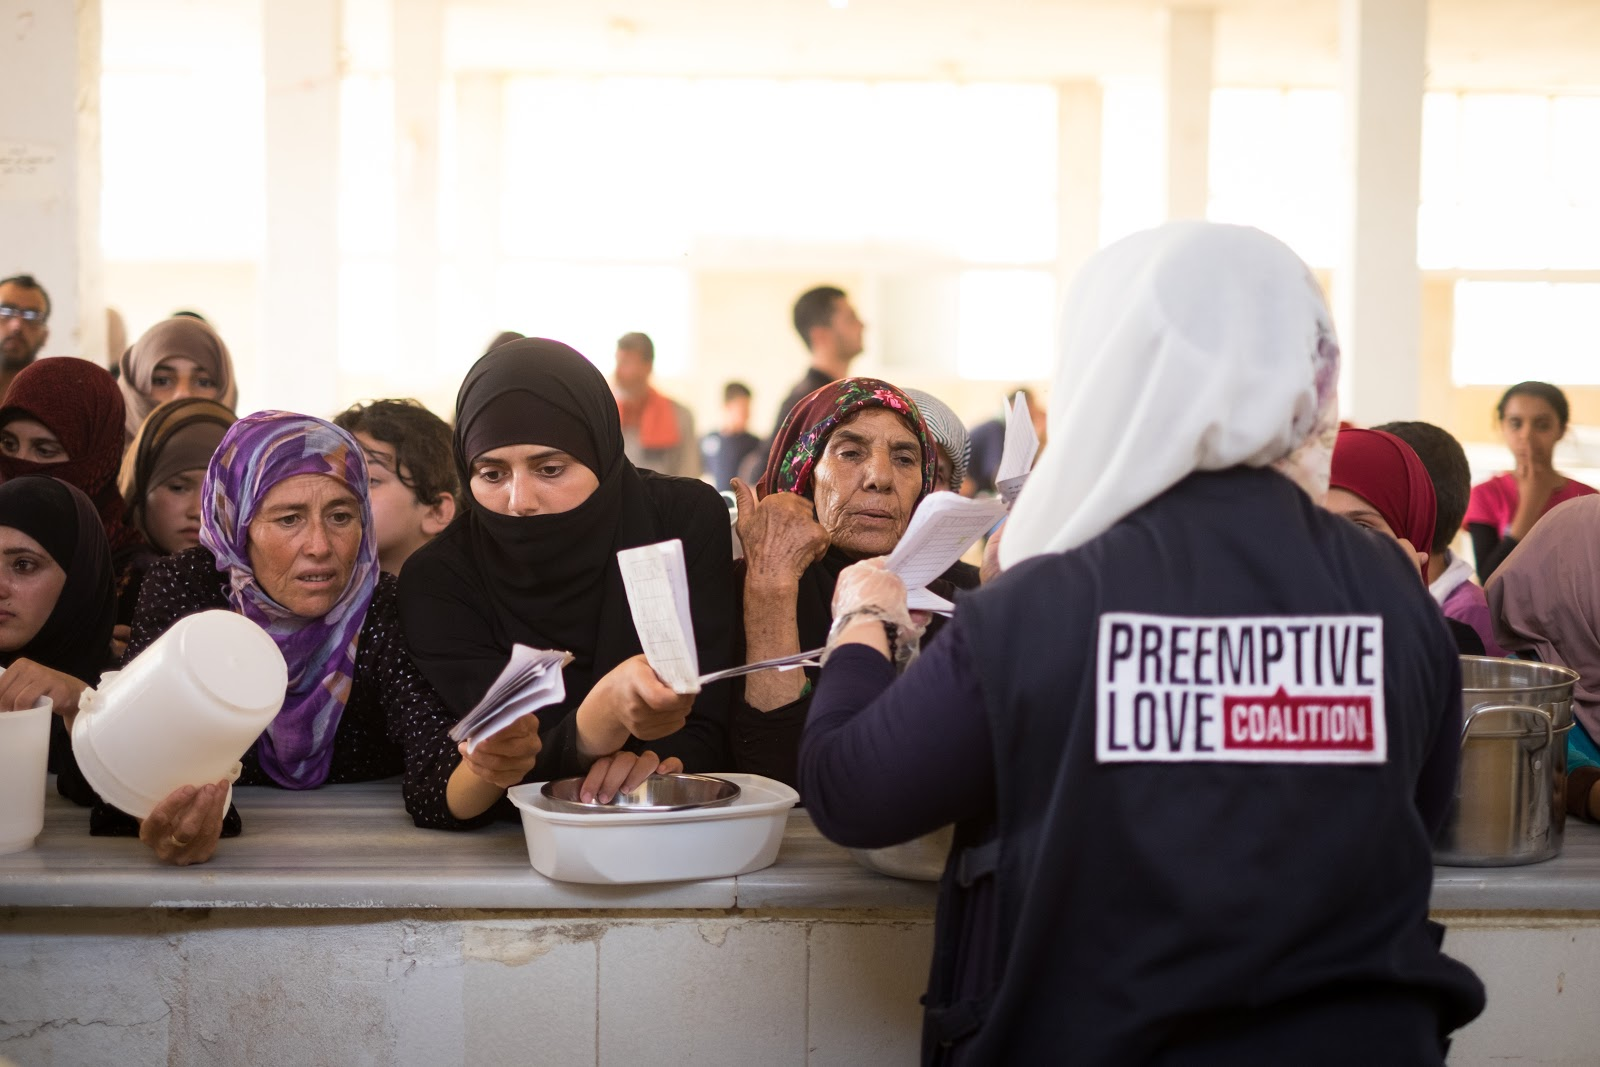 Feeding displaced families in Syria